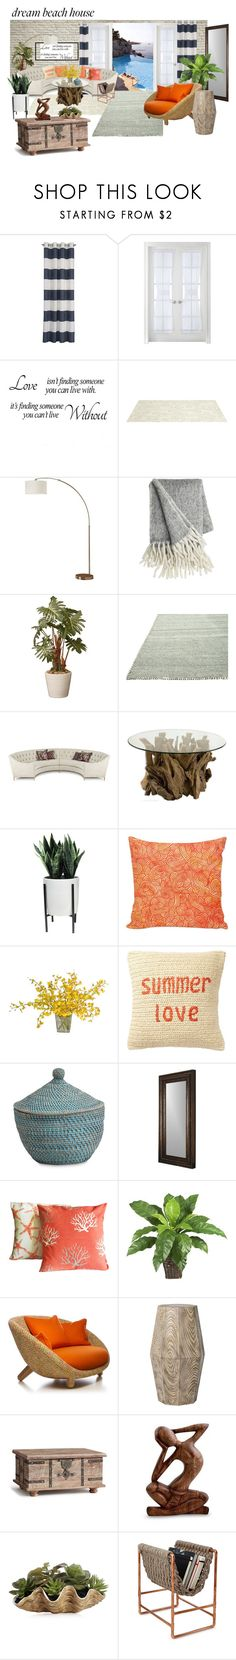 """""""Beach Home"""" by norma-licata ❤ liked on Polyvore featuring interior, interiors, interior design, home, home decor, interior decorating, Liz Claiborne, Somerset Bay, Ambella and Uttermost"""